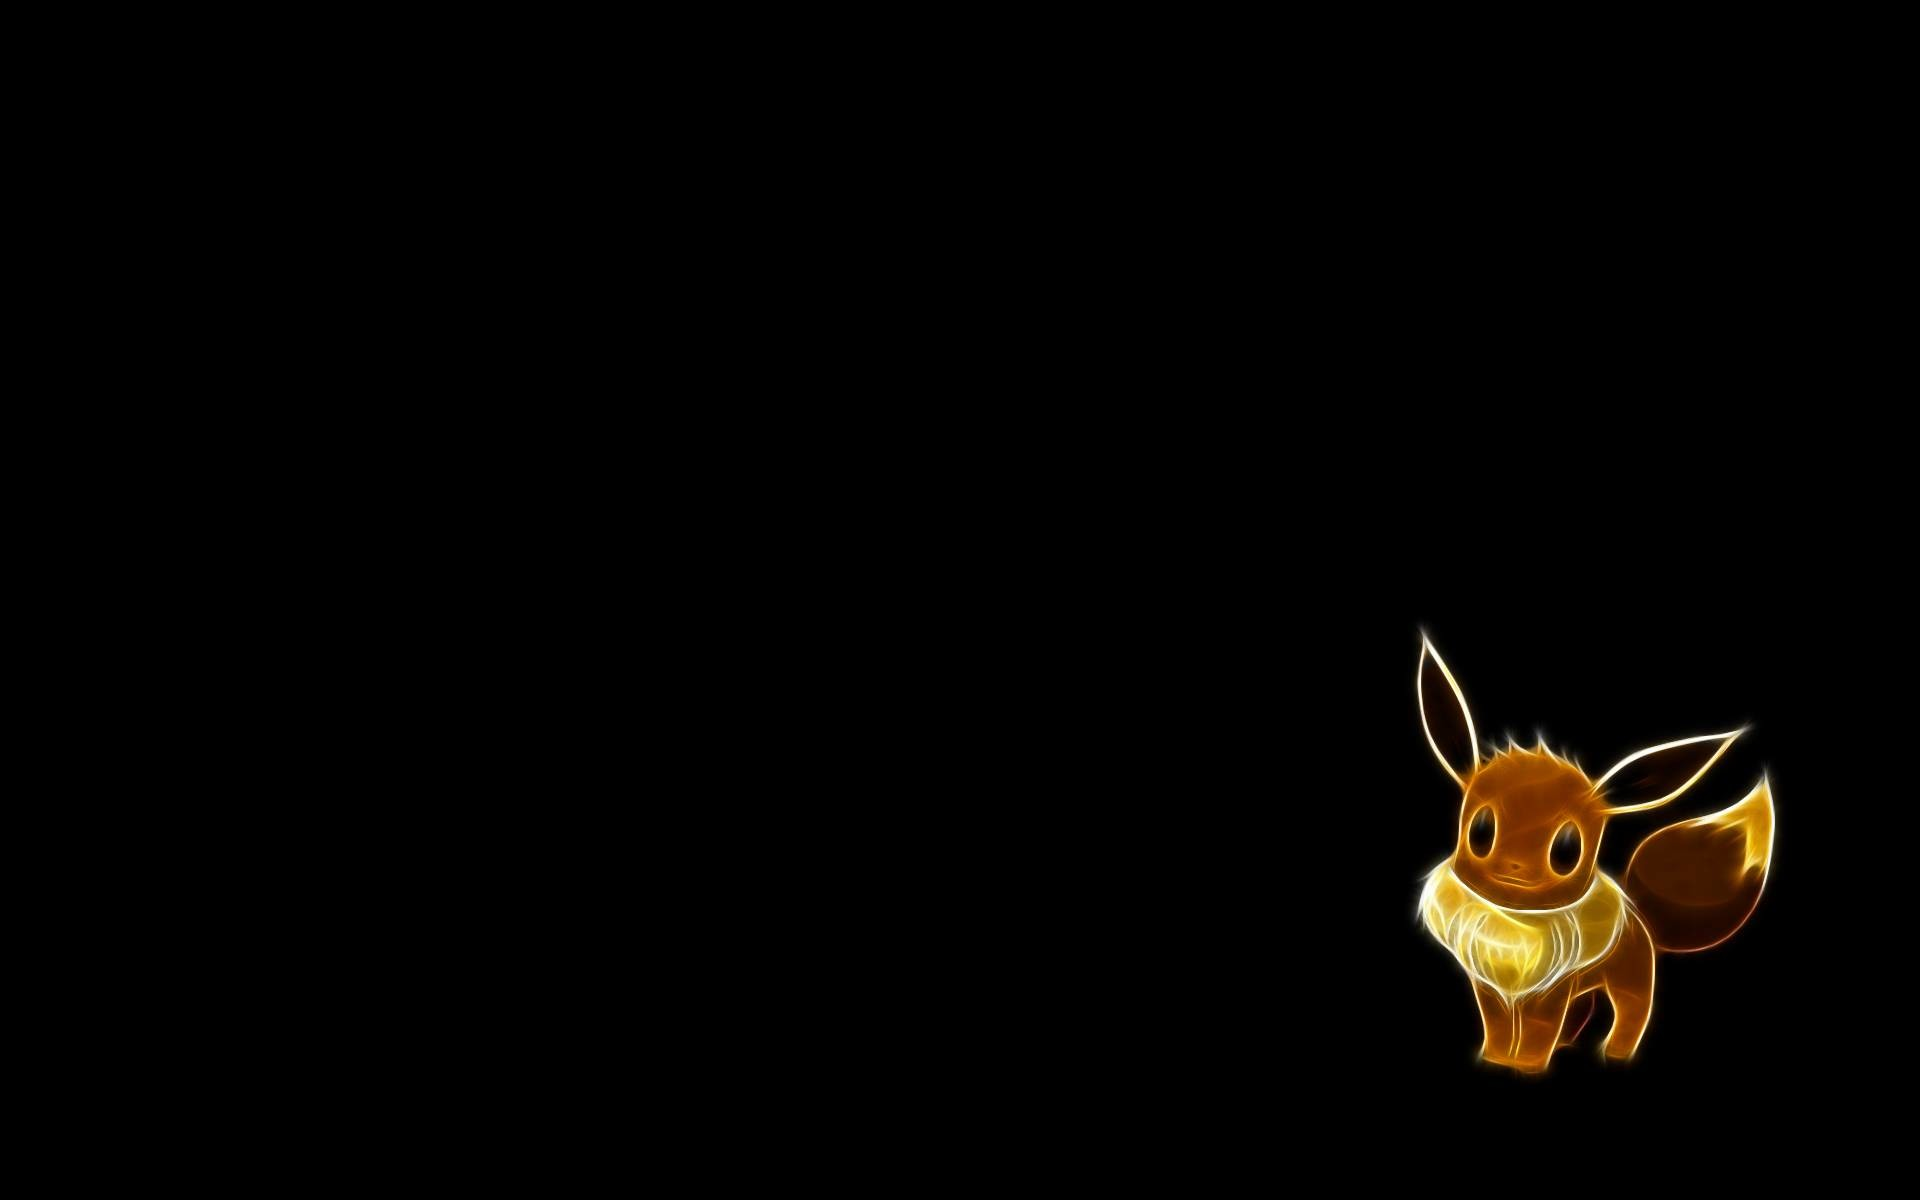 Pokemon Pictures Only Of Eevee Images | TheCelebrityPix